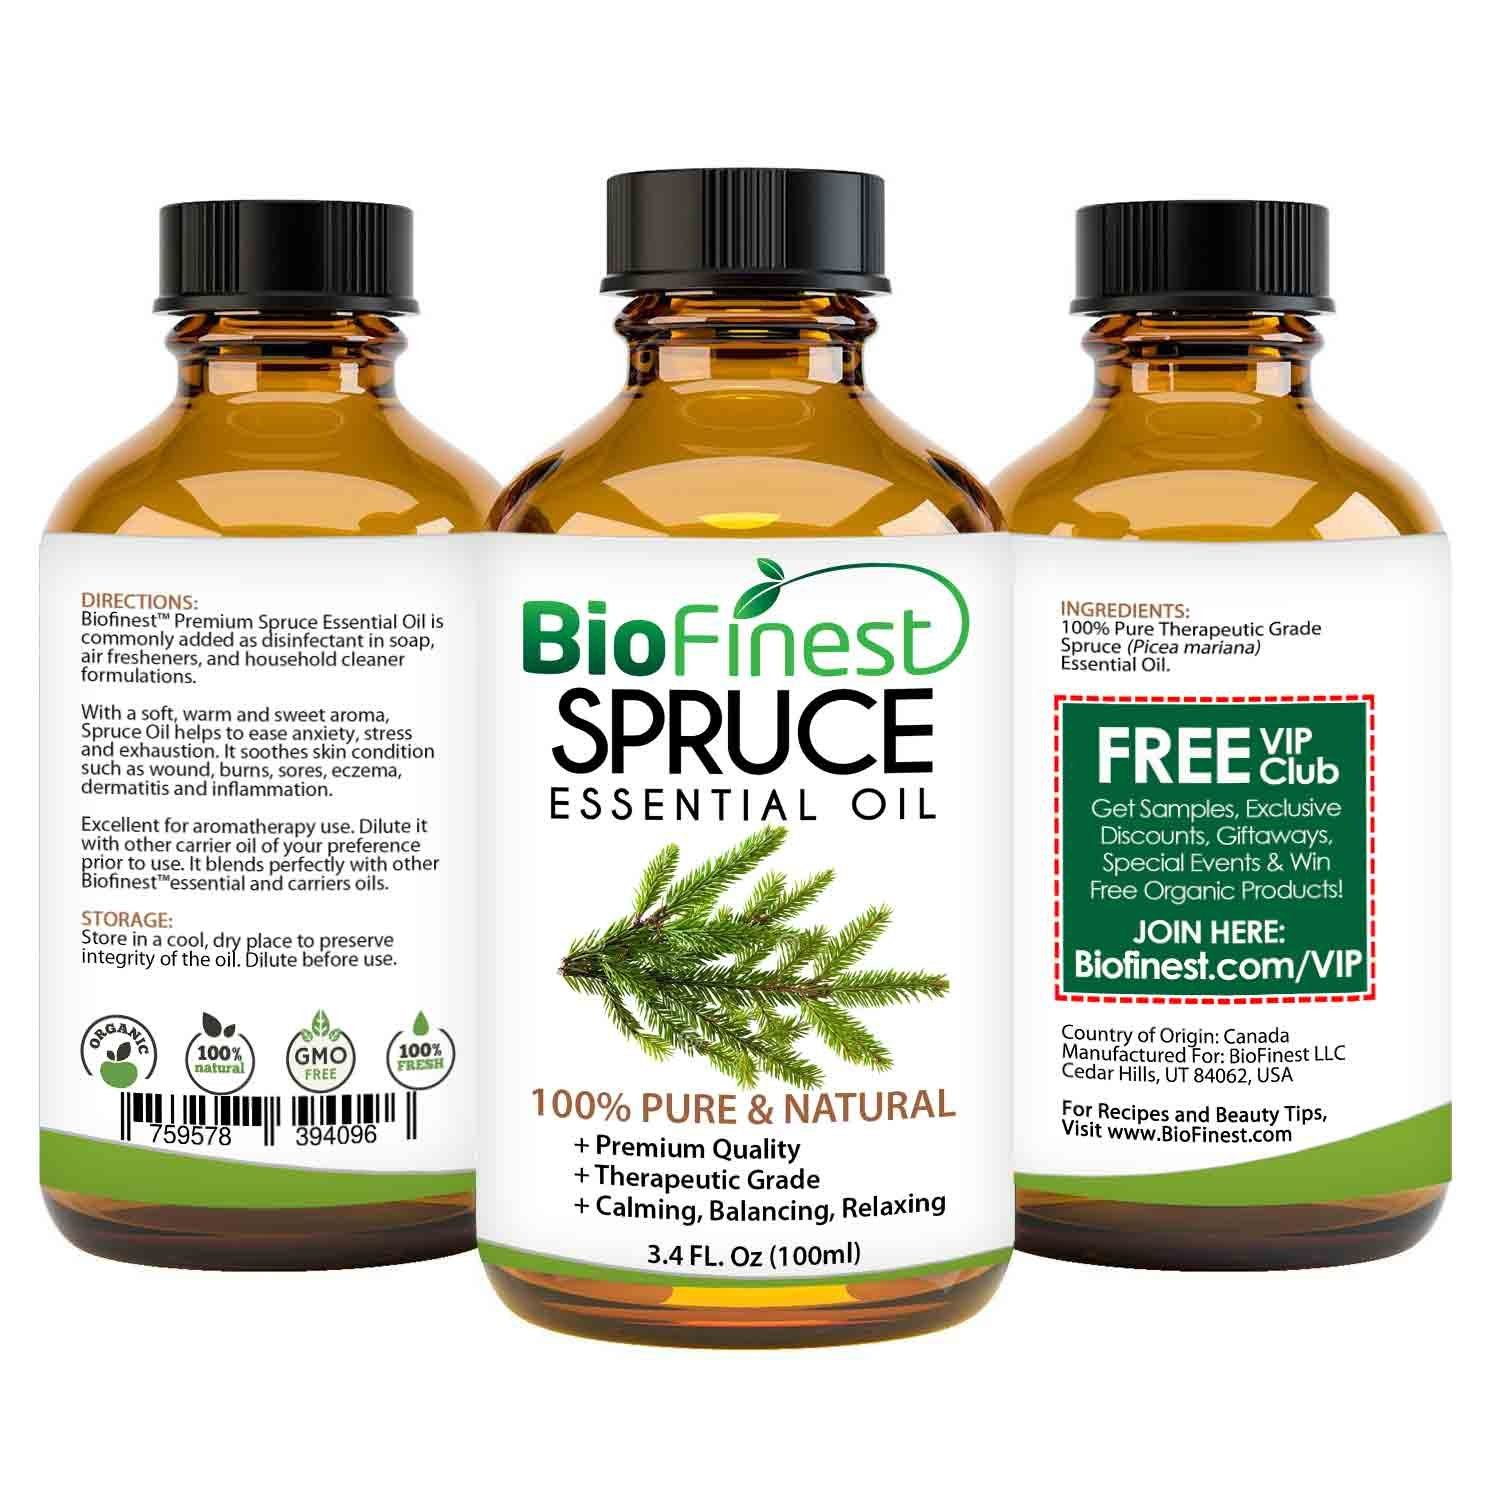 Biofinest Spruce Essential Oil - 100% Pure Organic Therapeutic Grade - Best for Aromatherapy, Skin and Hair Care, Ease Sleep Stress Bad Mood Fatigue Muscle Joint Pain - Free E-Book & Dropper (100ml) by BioFinest (Image #2)